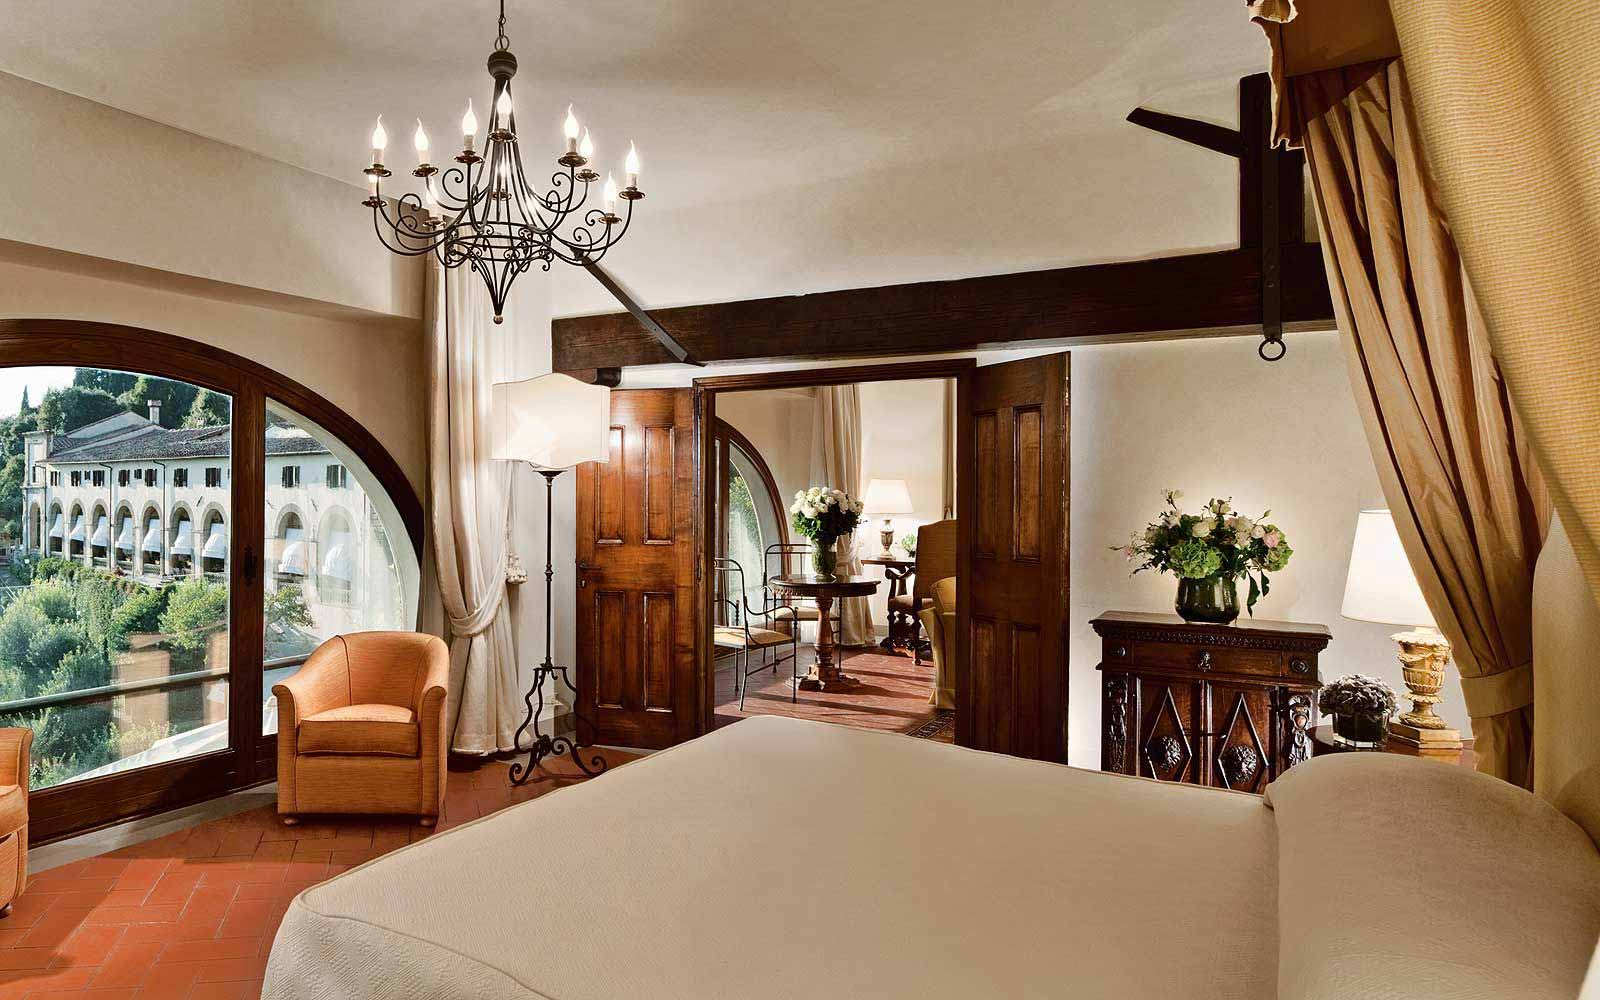 Limonaia Suite & Villa at Belmond Villa San Michele